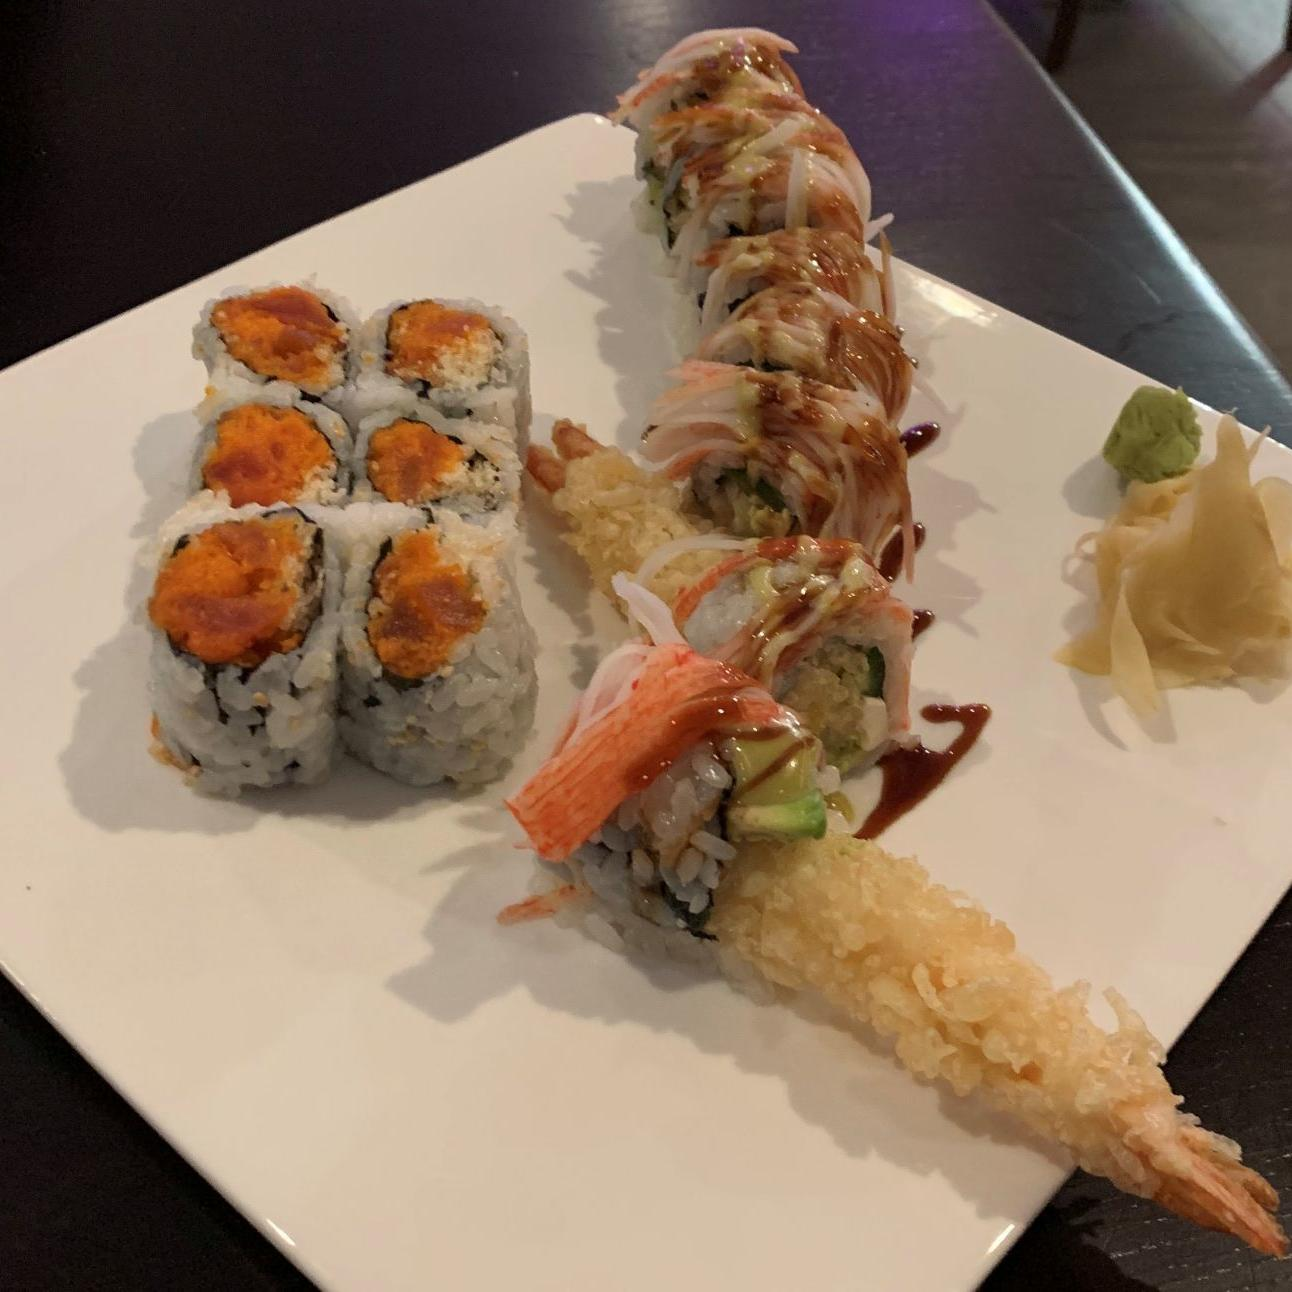 Yume Brings Takara Taste Back To State Street Dining Reviews Madison Com Sushi minto via san marco, 2, 39012 merano (bz). yume brings takara taste back to state